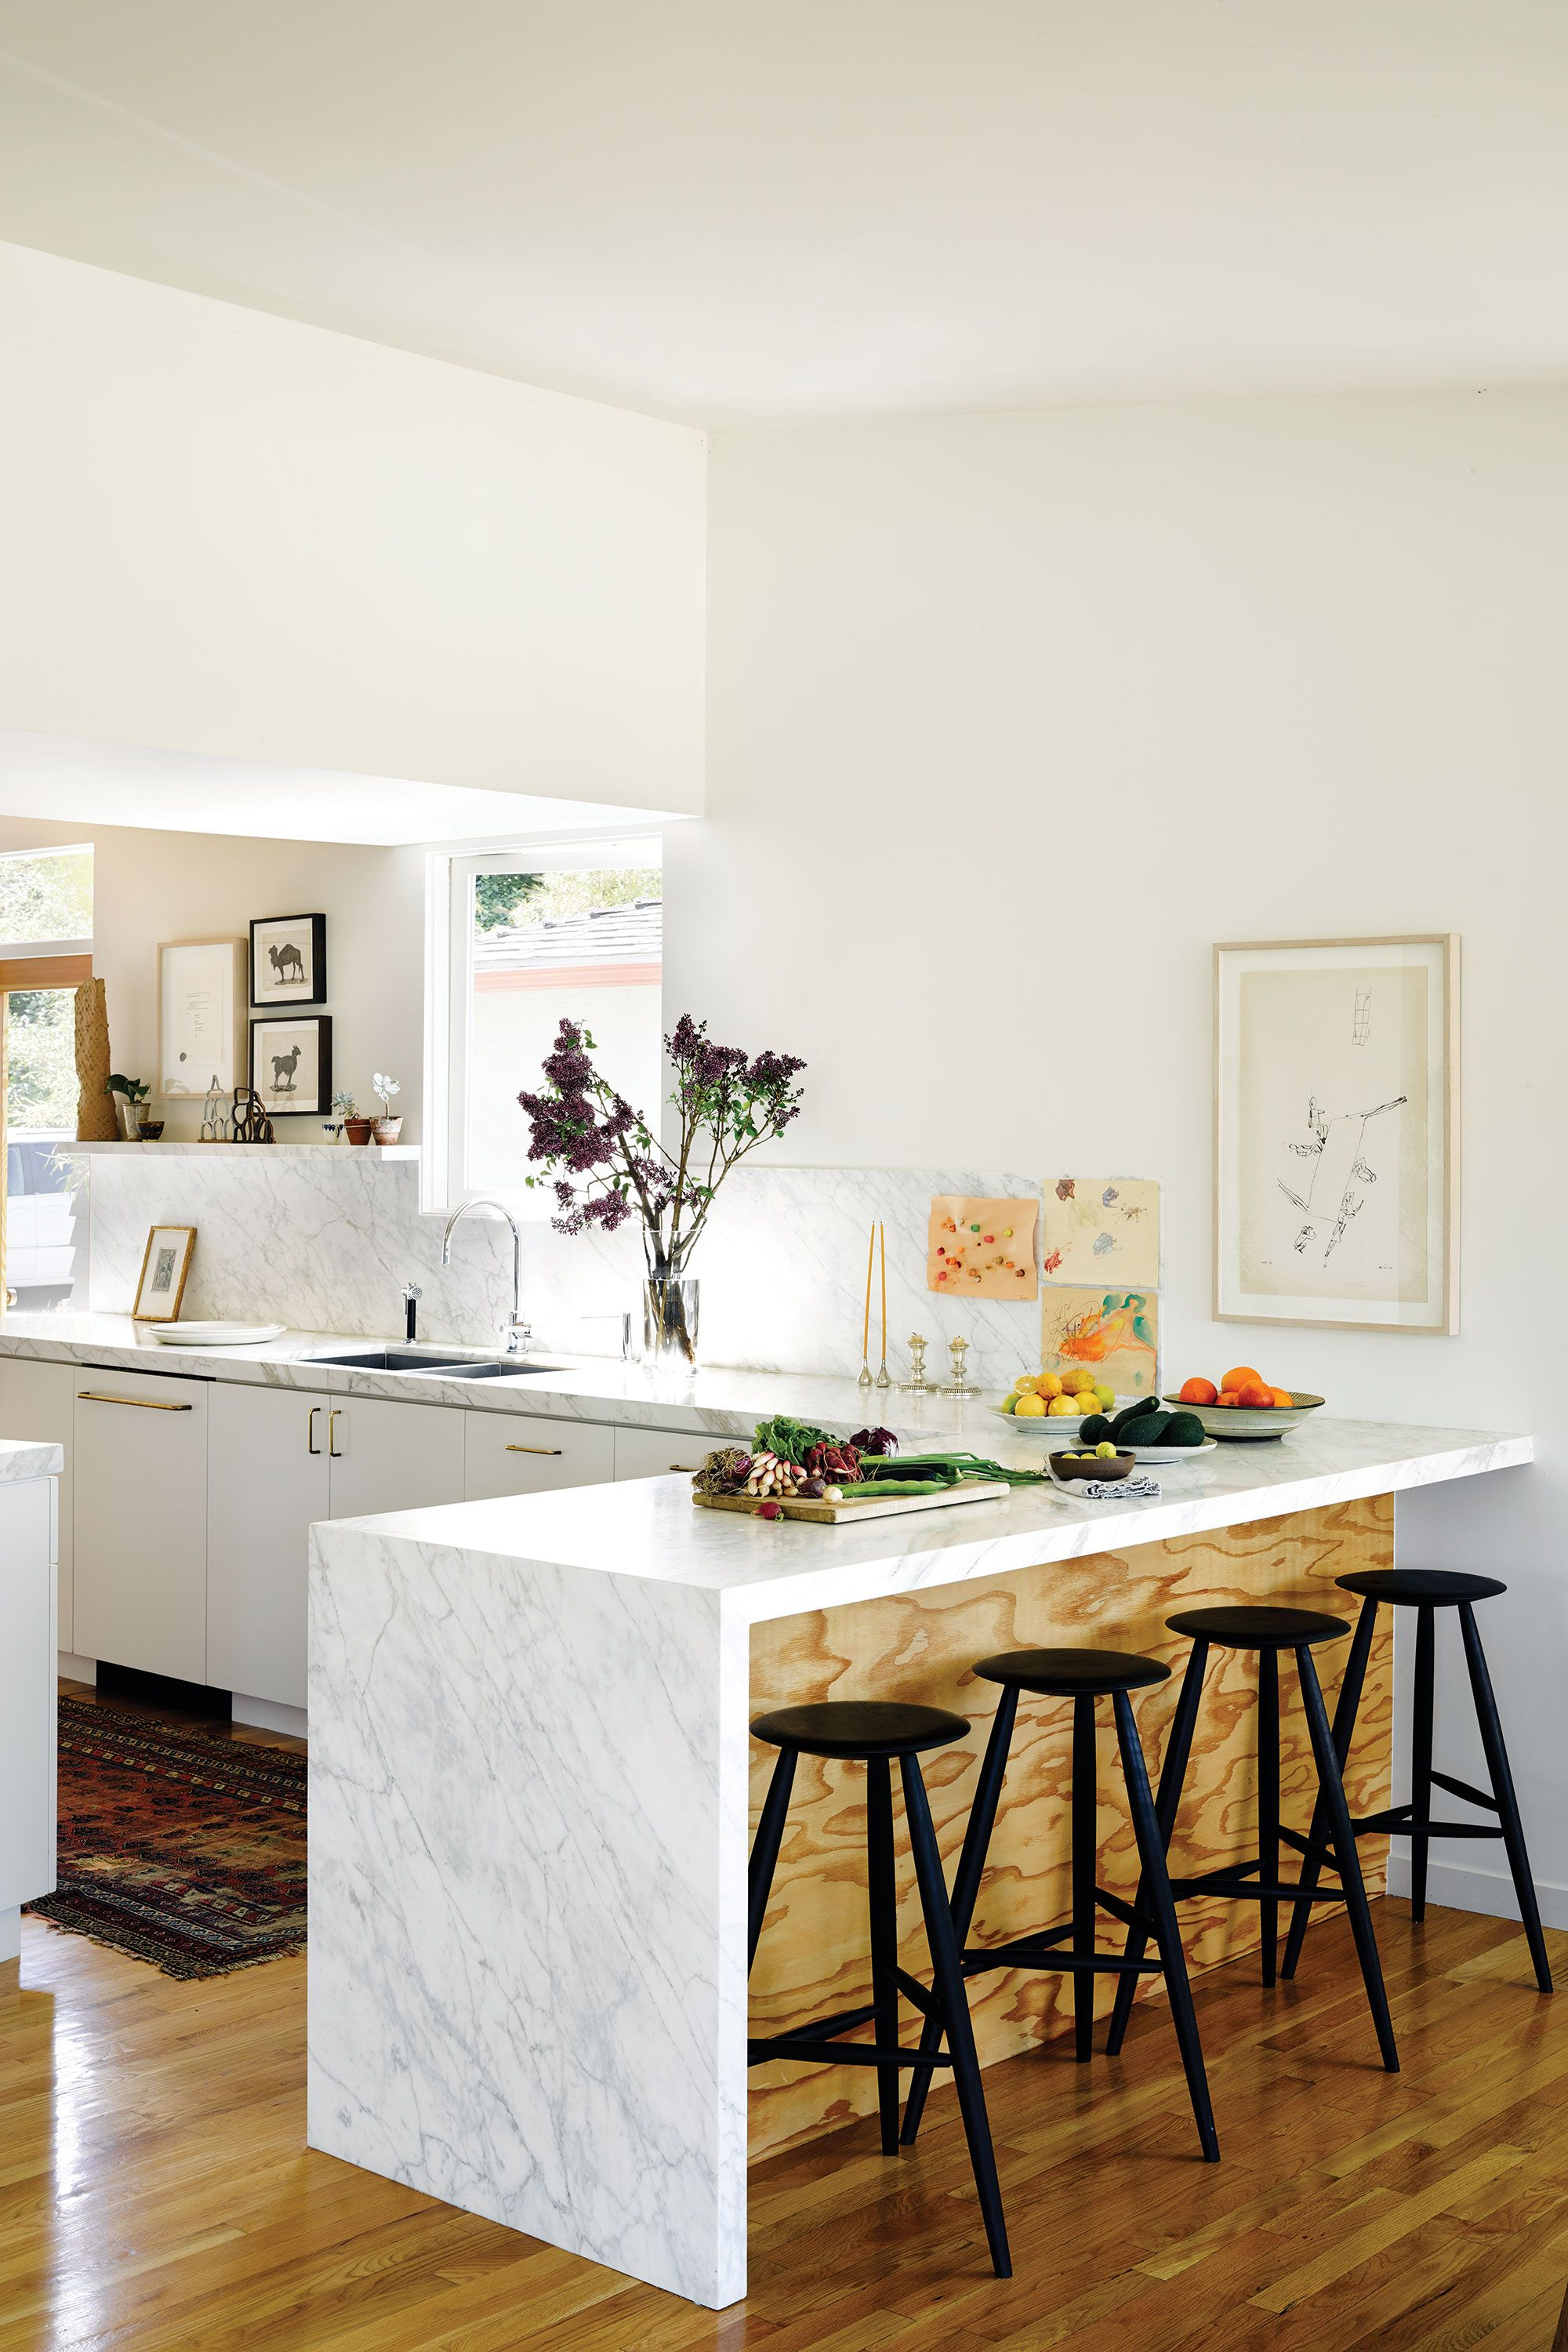 With smooth Carrara marble and stools from Sawkille, N.Y., the ...